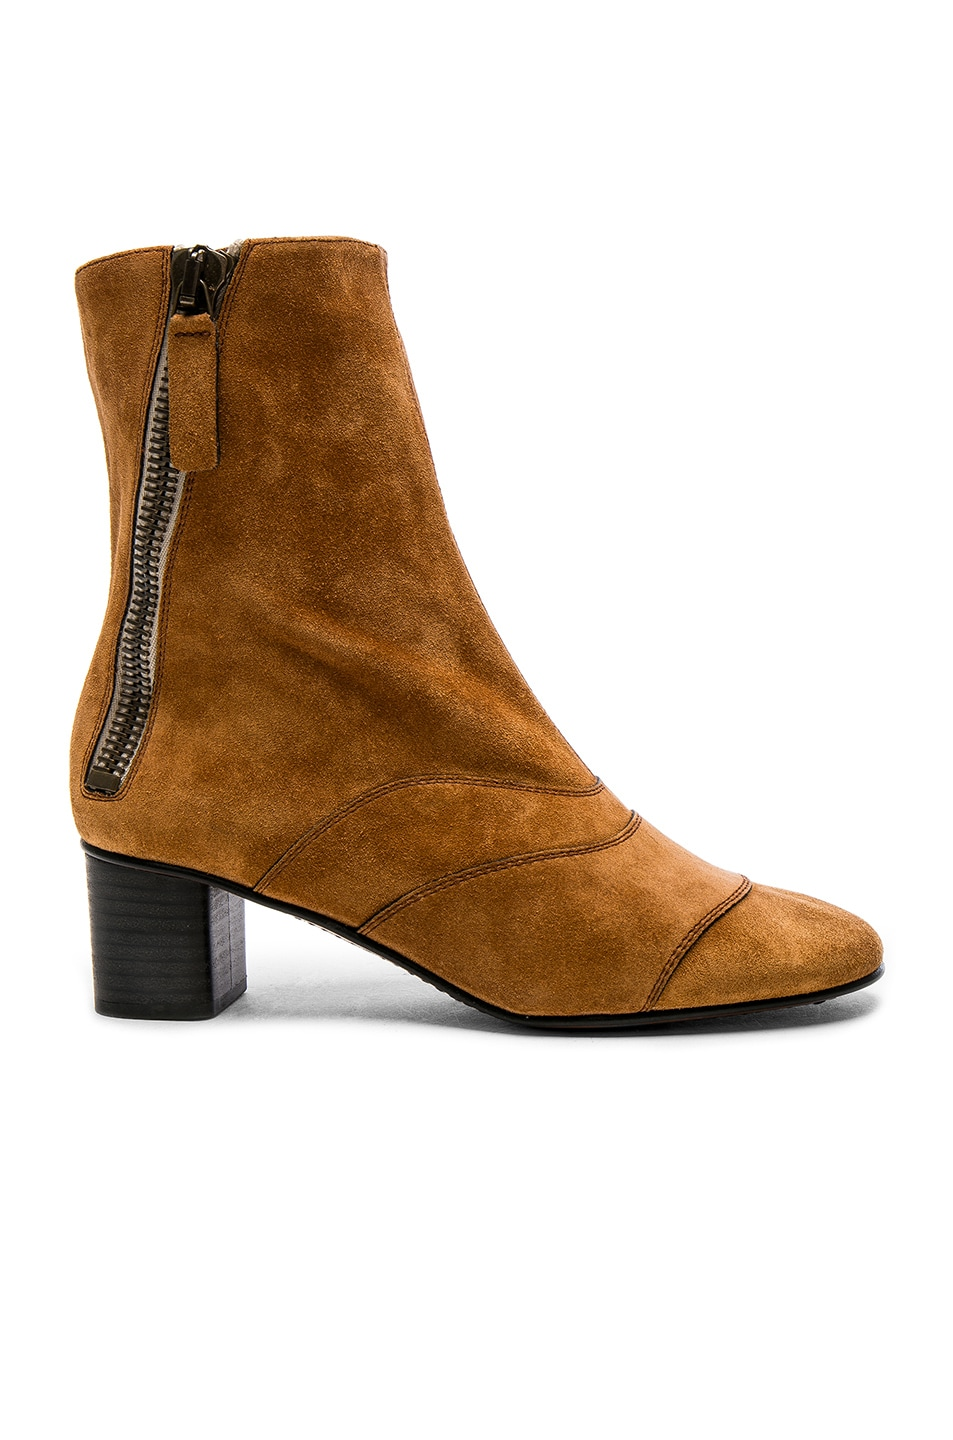 Image 1 of Chloe Suede Lexie Low Boots in Natural Brown